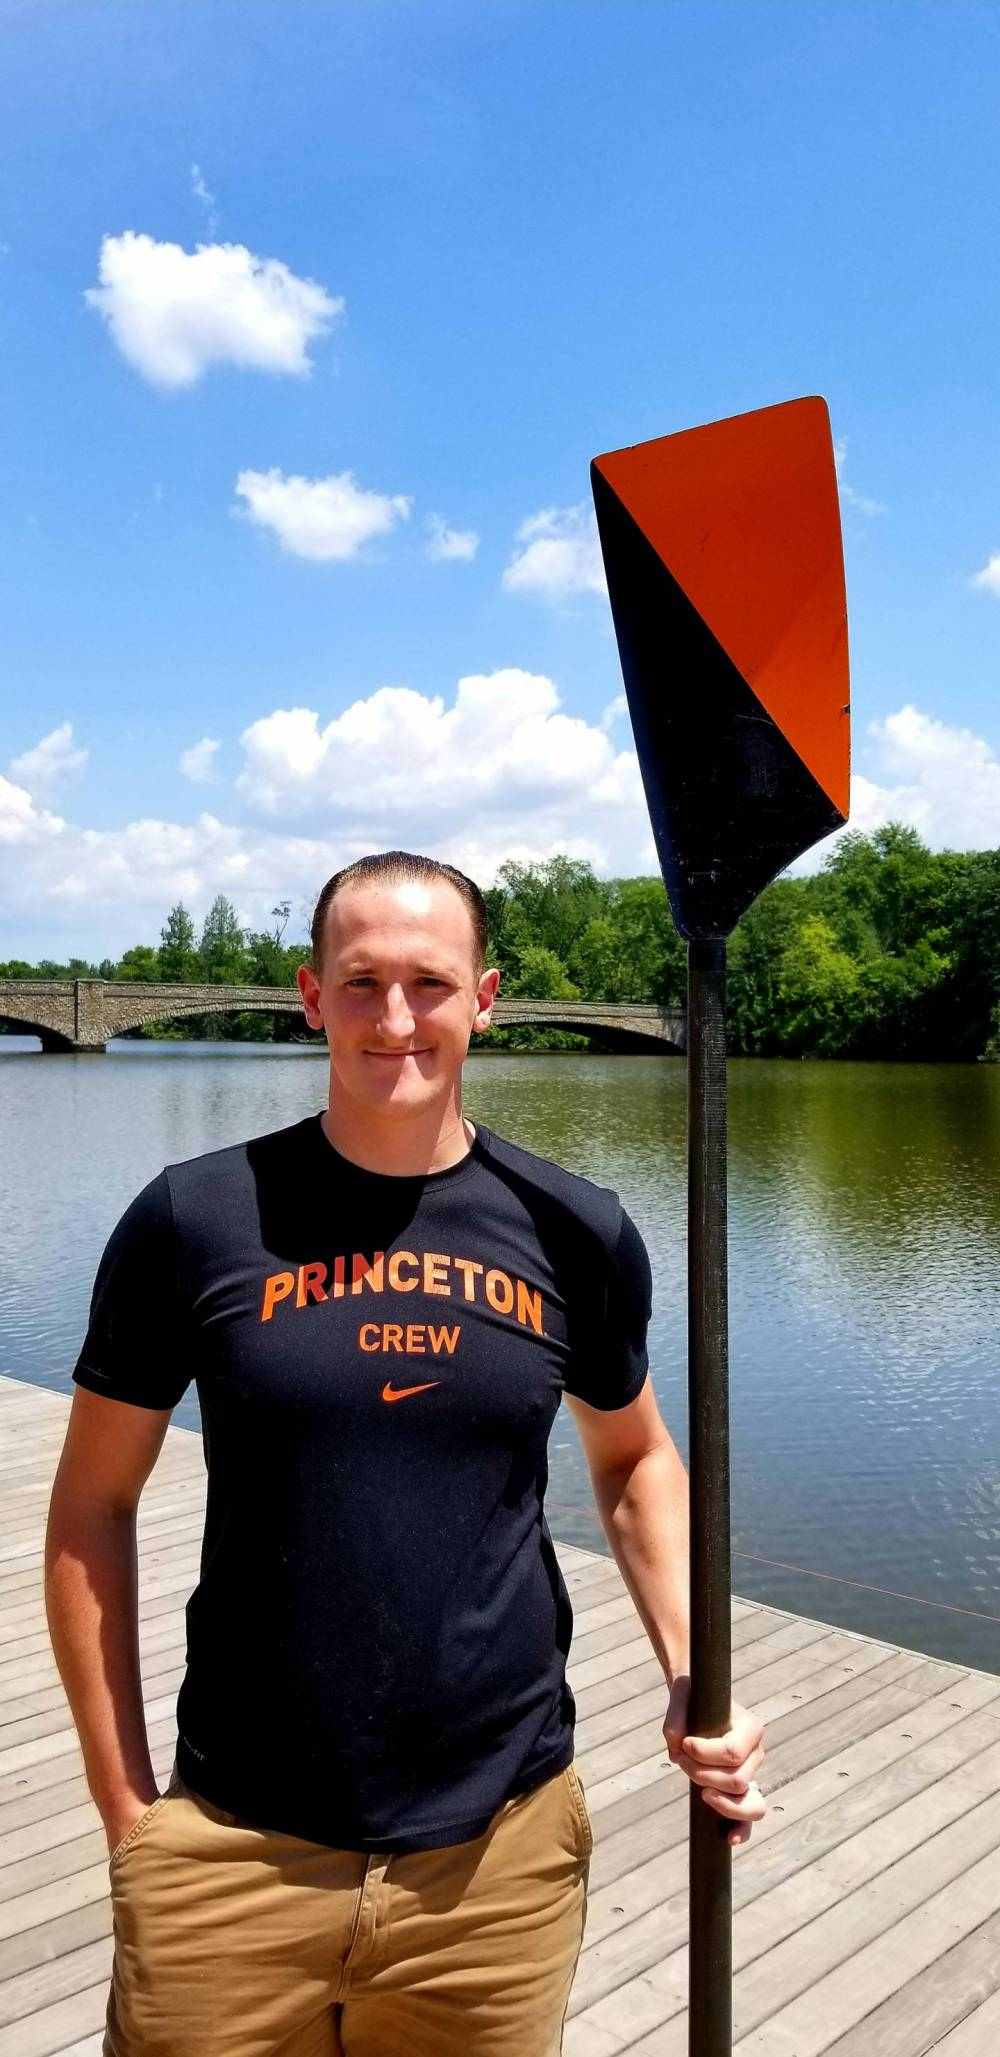 Student holding black and orange rowing oar